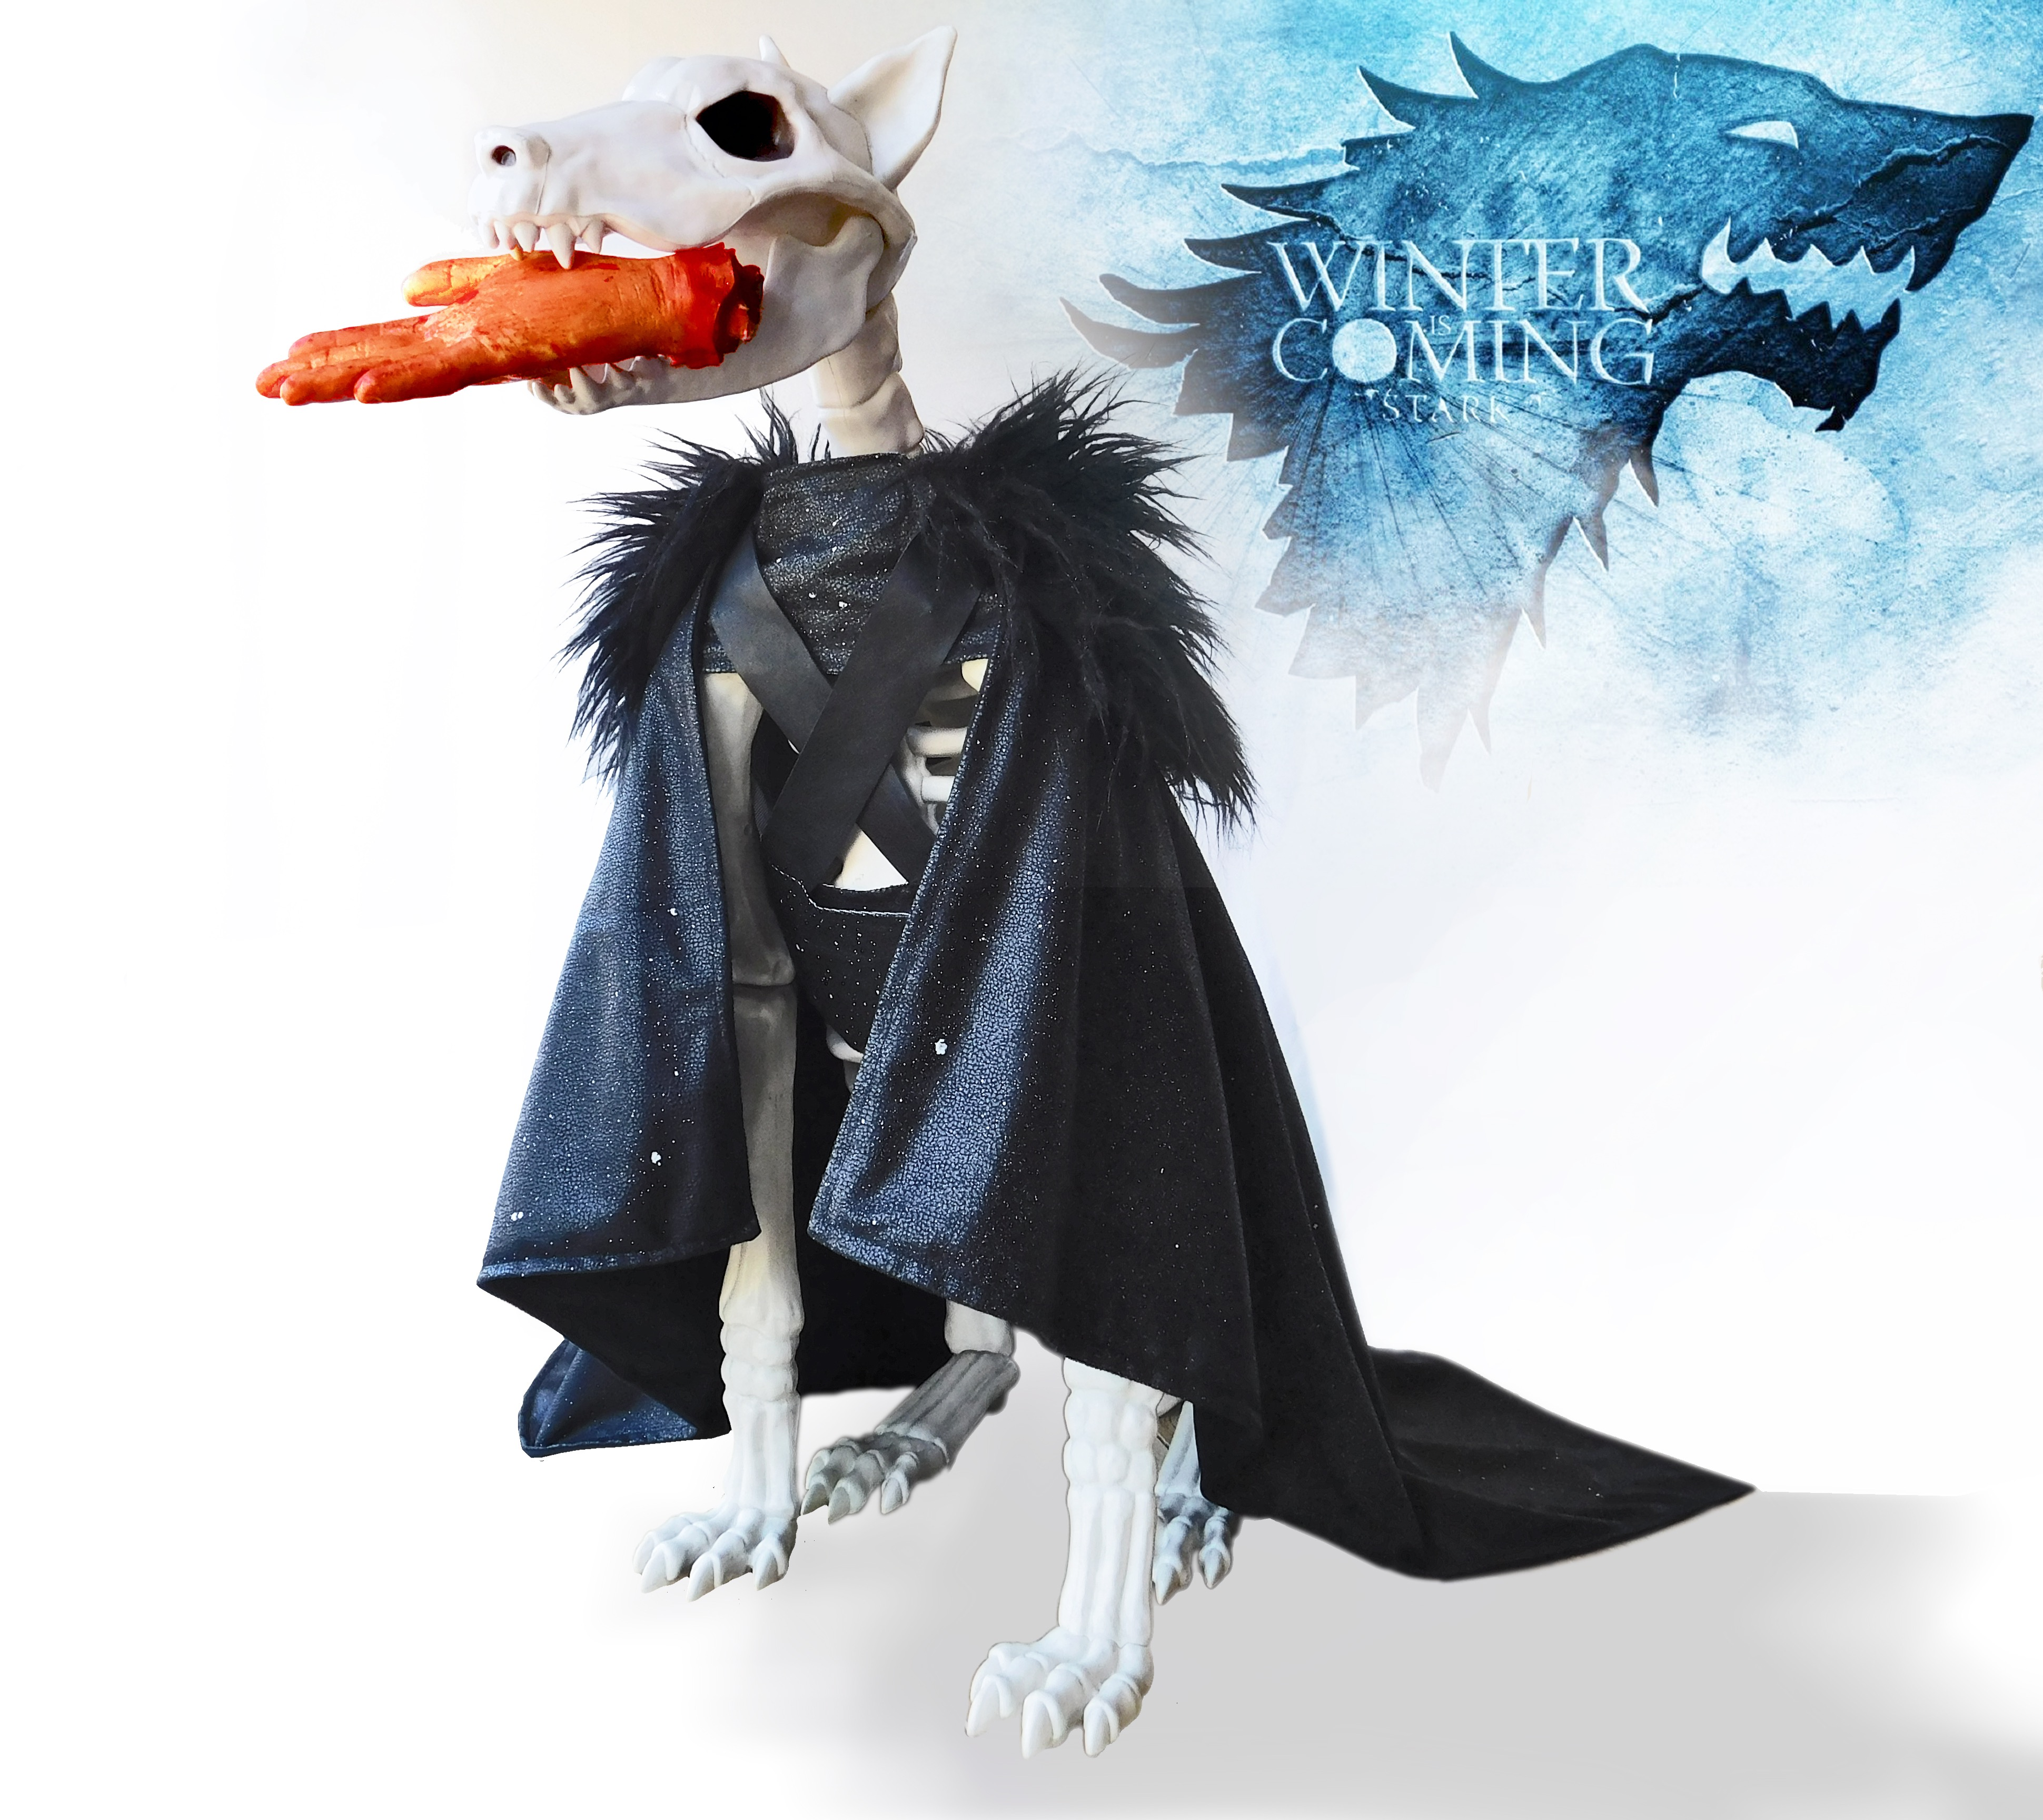 Grande Thrones Winterfell Dog Boots Dog Boots Winter Reviews Diy Dog Boots Jon Snow Winterfell Dog Costume Watch Game Winter bark post Dog Boots For Winter